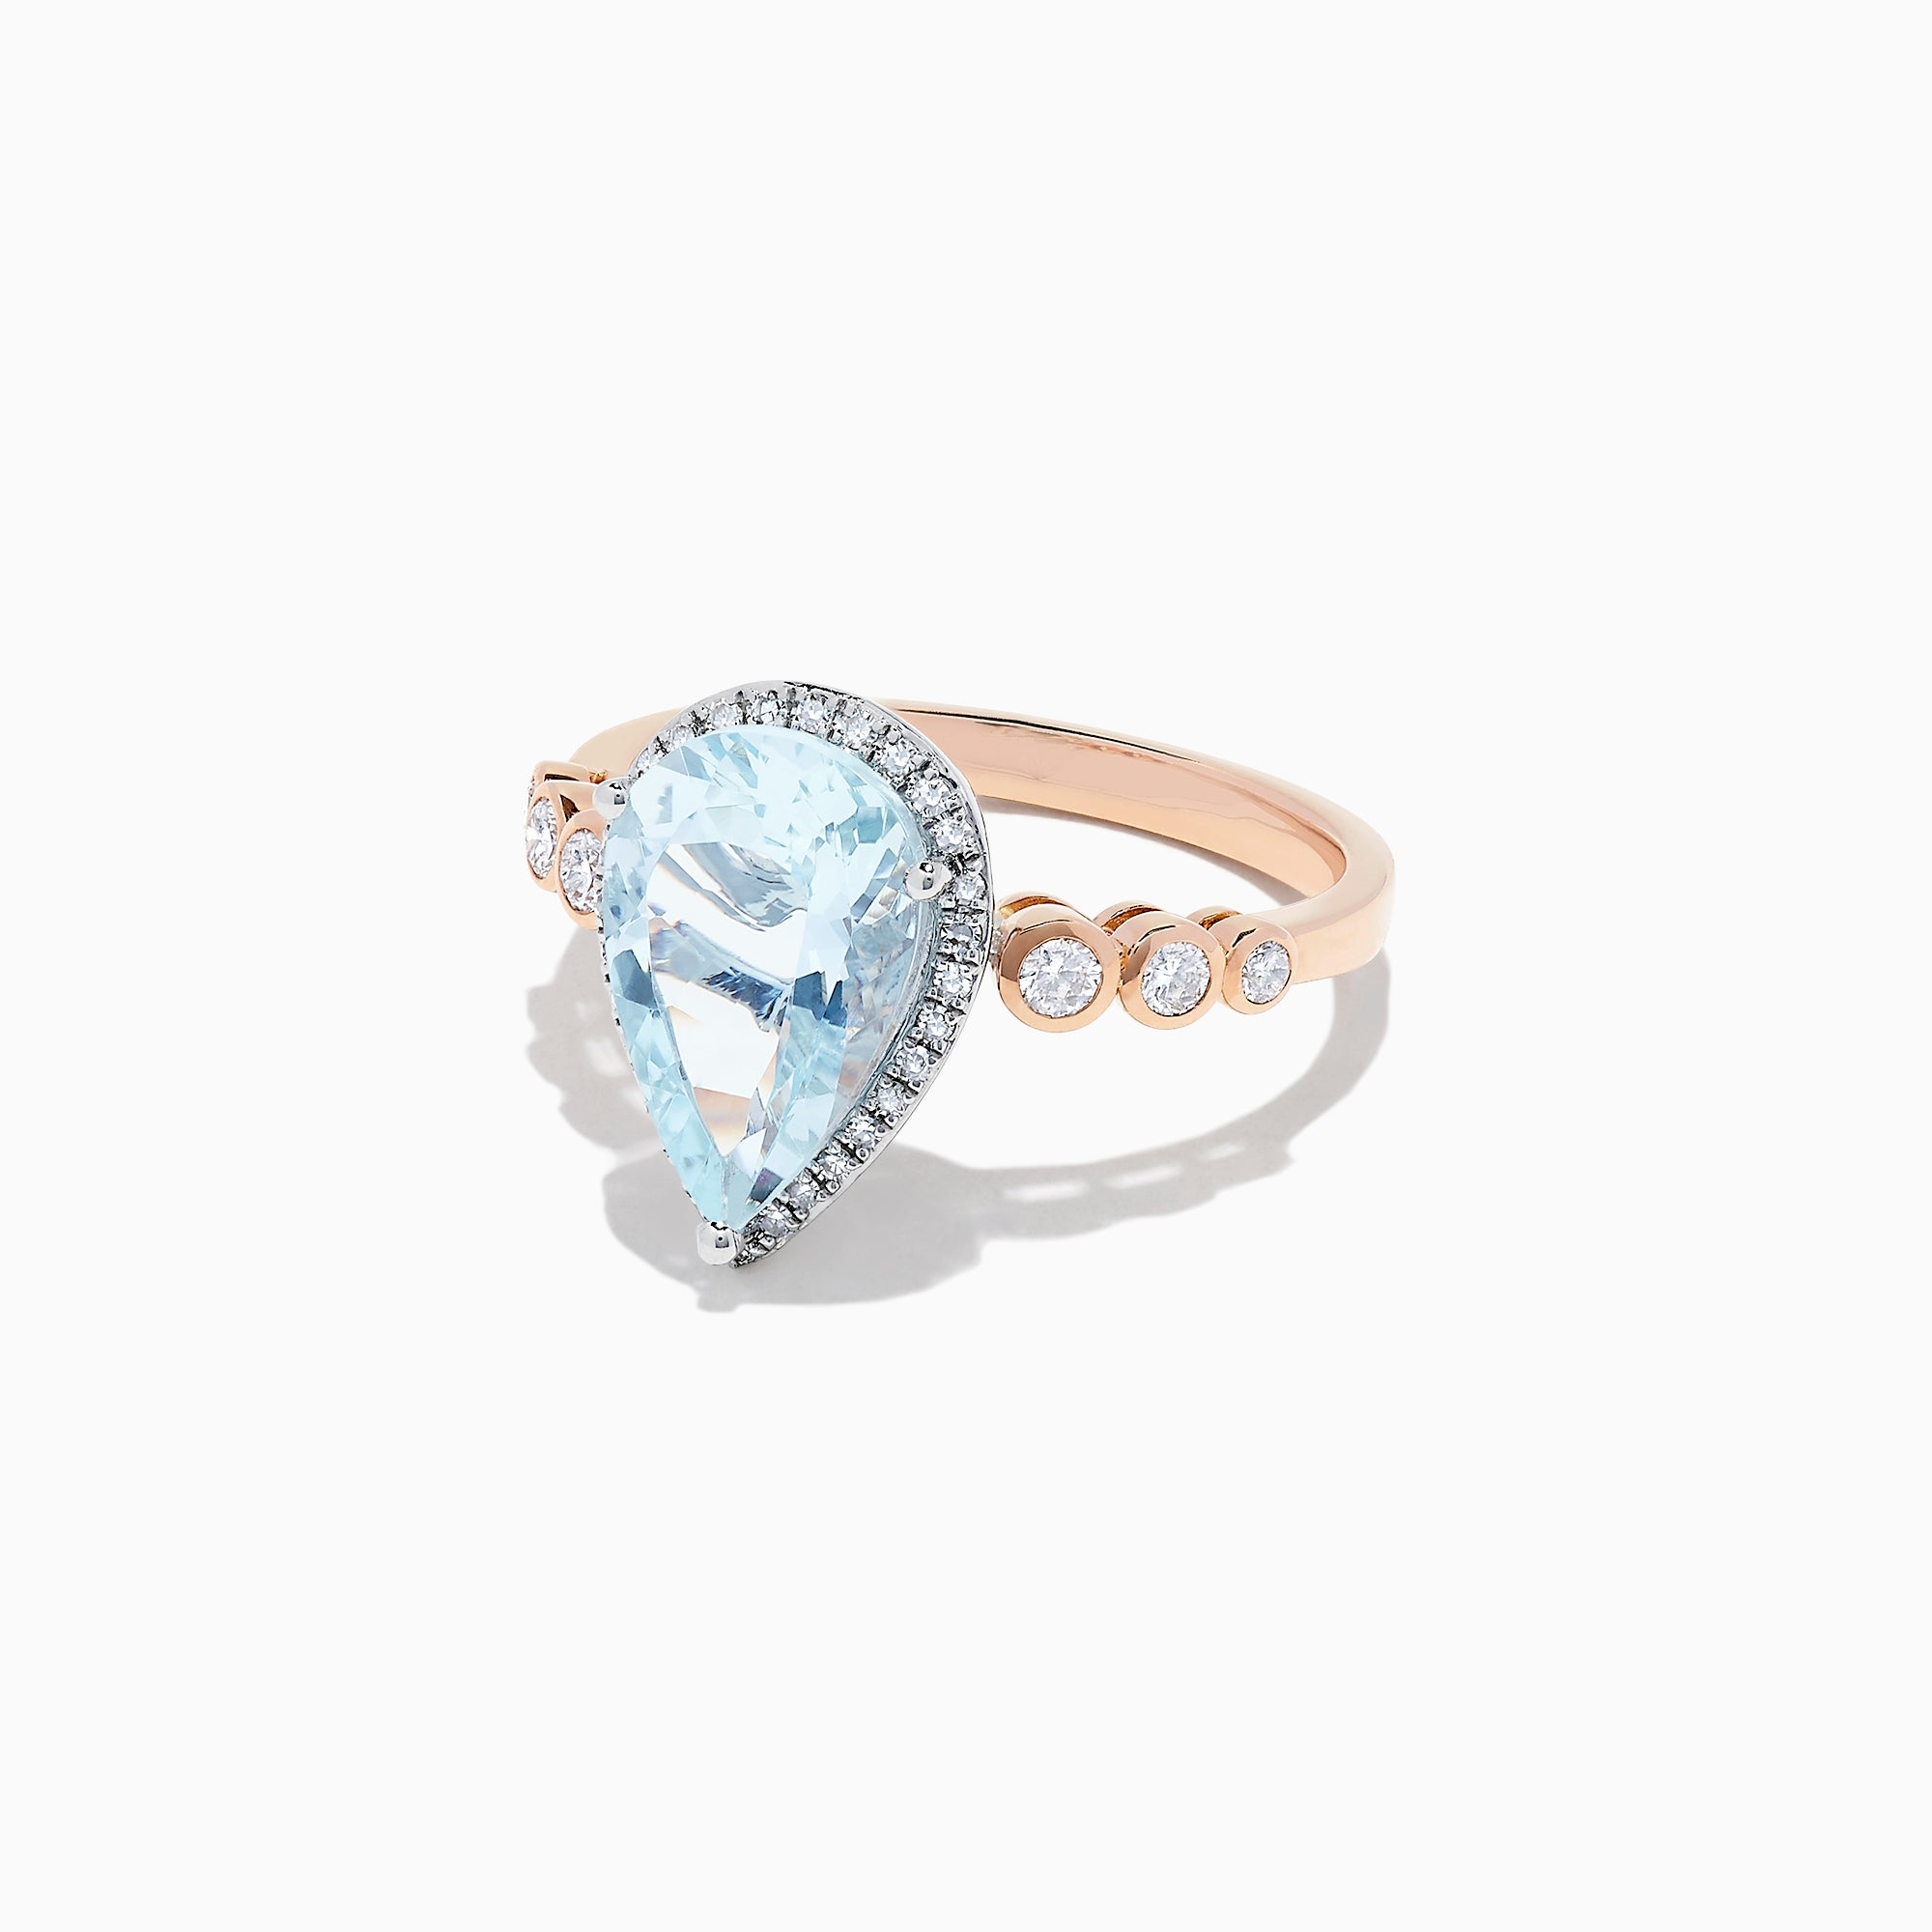 Effy Aquarius 14K Rose & White Gold Aquamarine and Diamond Ring, 2.76 TCW